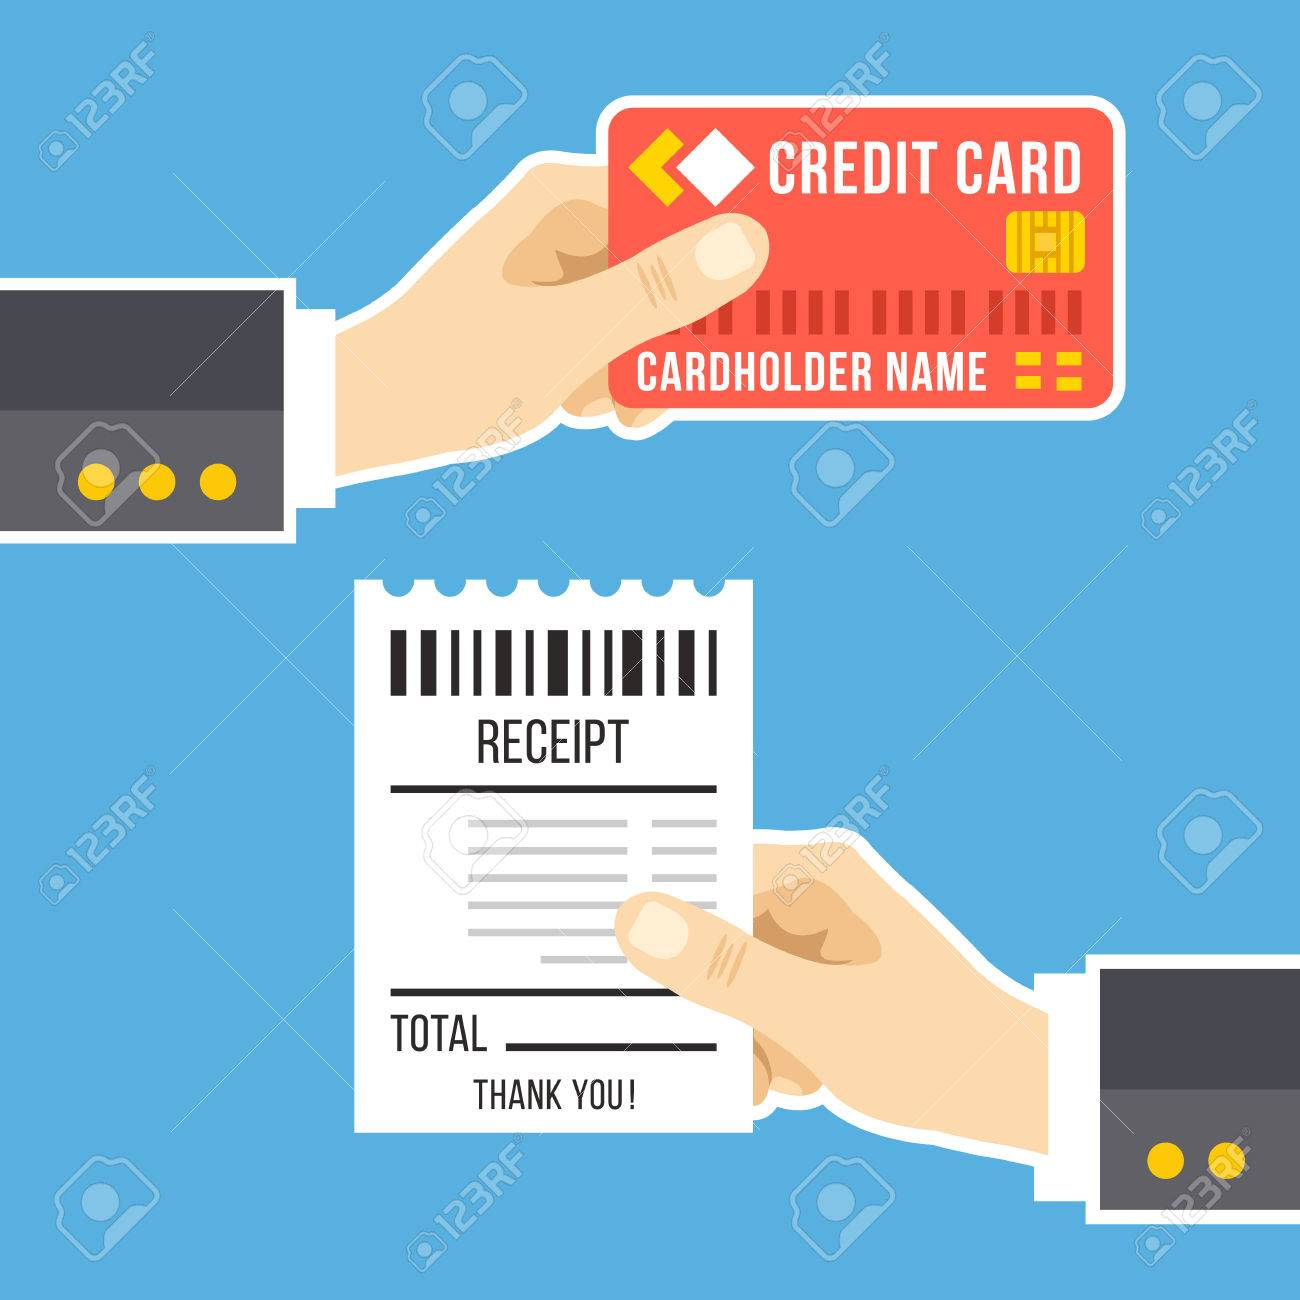 Small business credit card receipts gallery card design and card small business credit card receipts gallery card design and card business loans on credit card receipts reheart Gallery